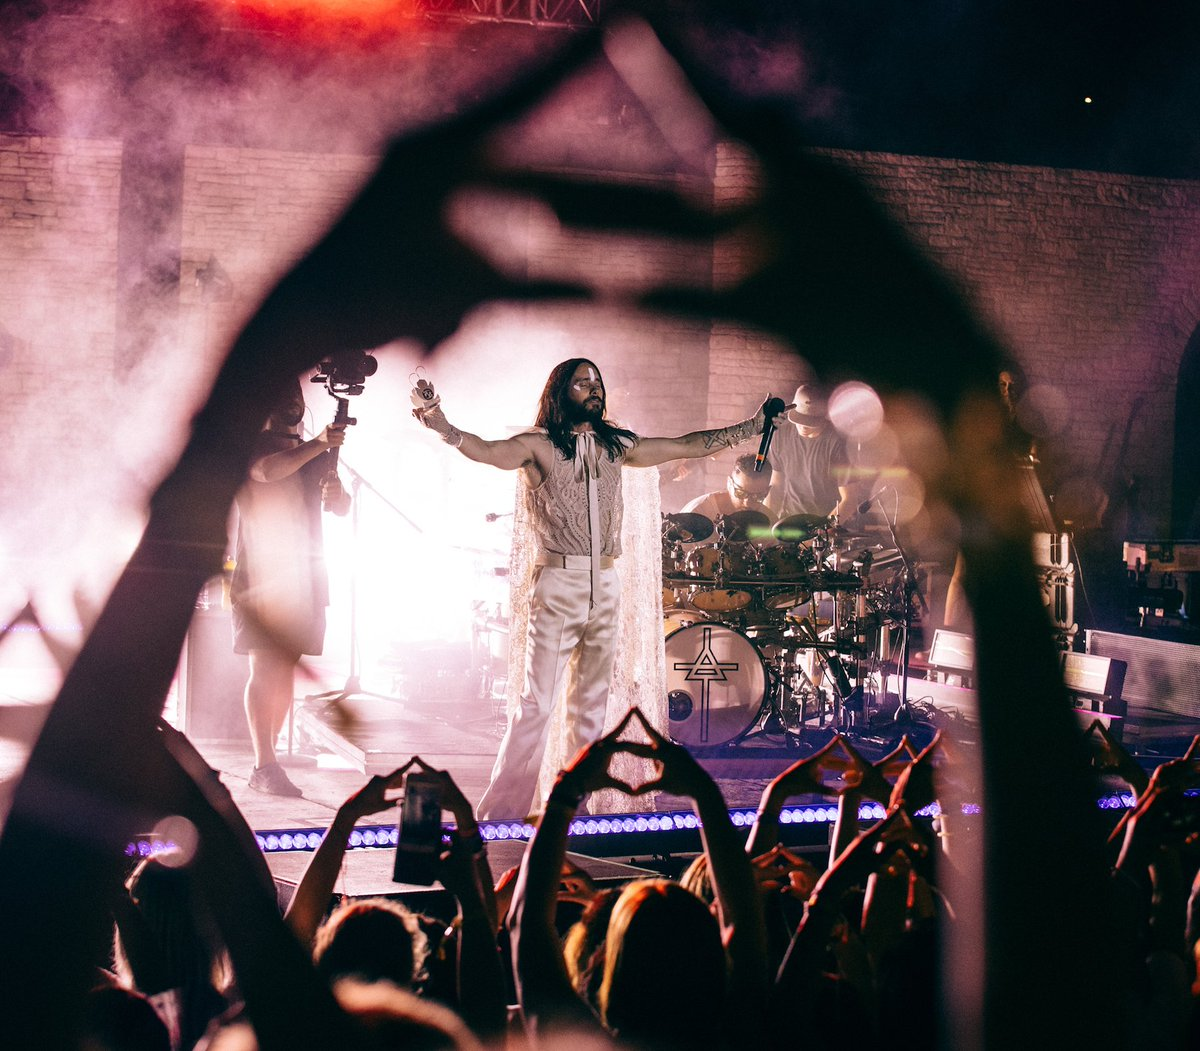 RT @30SECONDSTOMARS: You wouldn't understand https://t.co/5qLzVslpdP